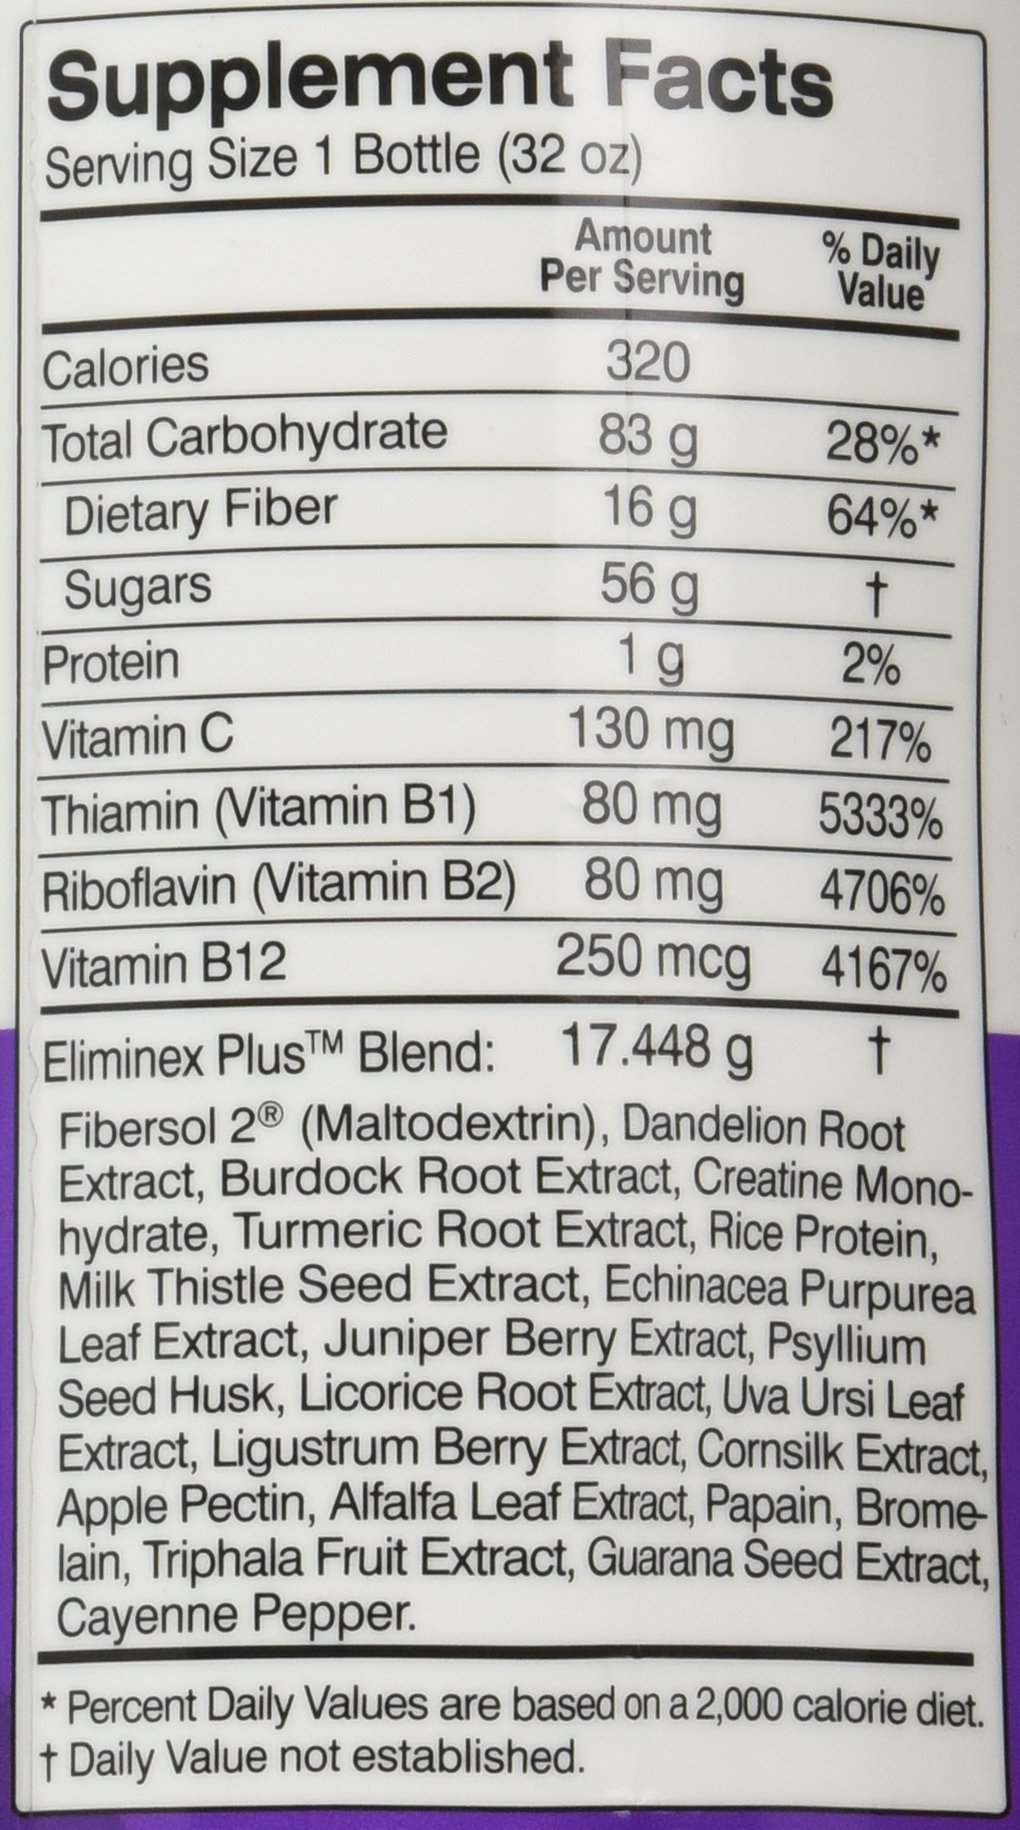 Herbal Clean QCarbo32 Fast Cleansing Drink Grape Flavor - 32 Ounce - Same Day Detox by Herbal Clean (Image #2)